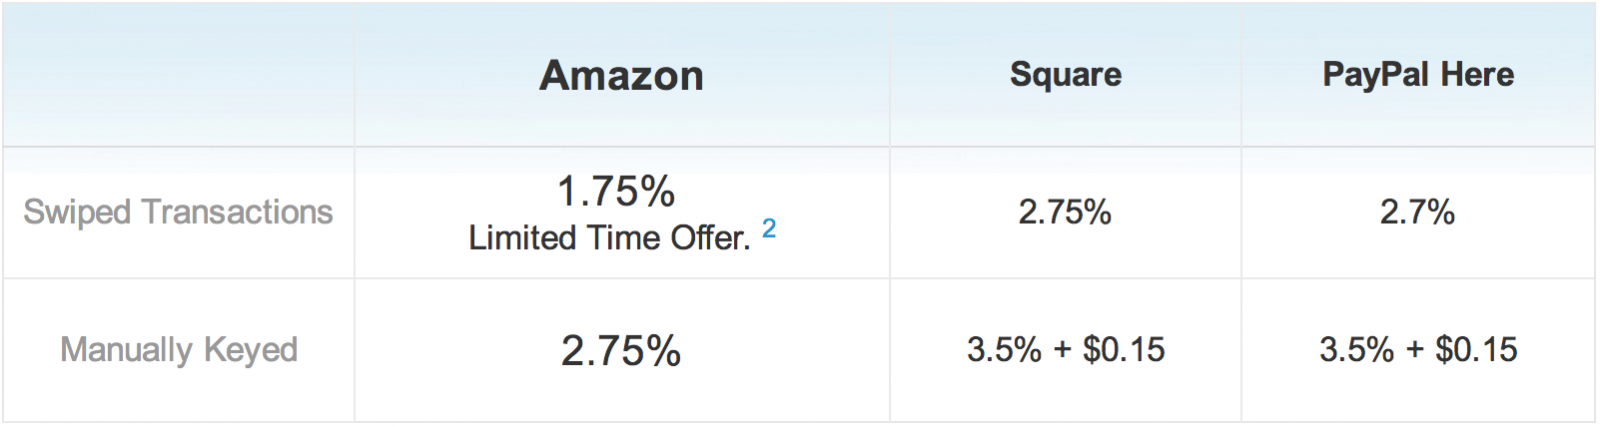 Amazon Local register vs Square vs Paypal